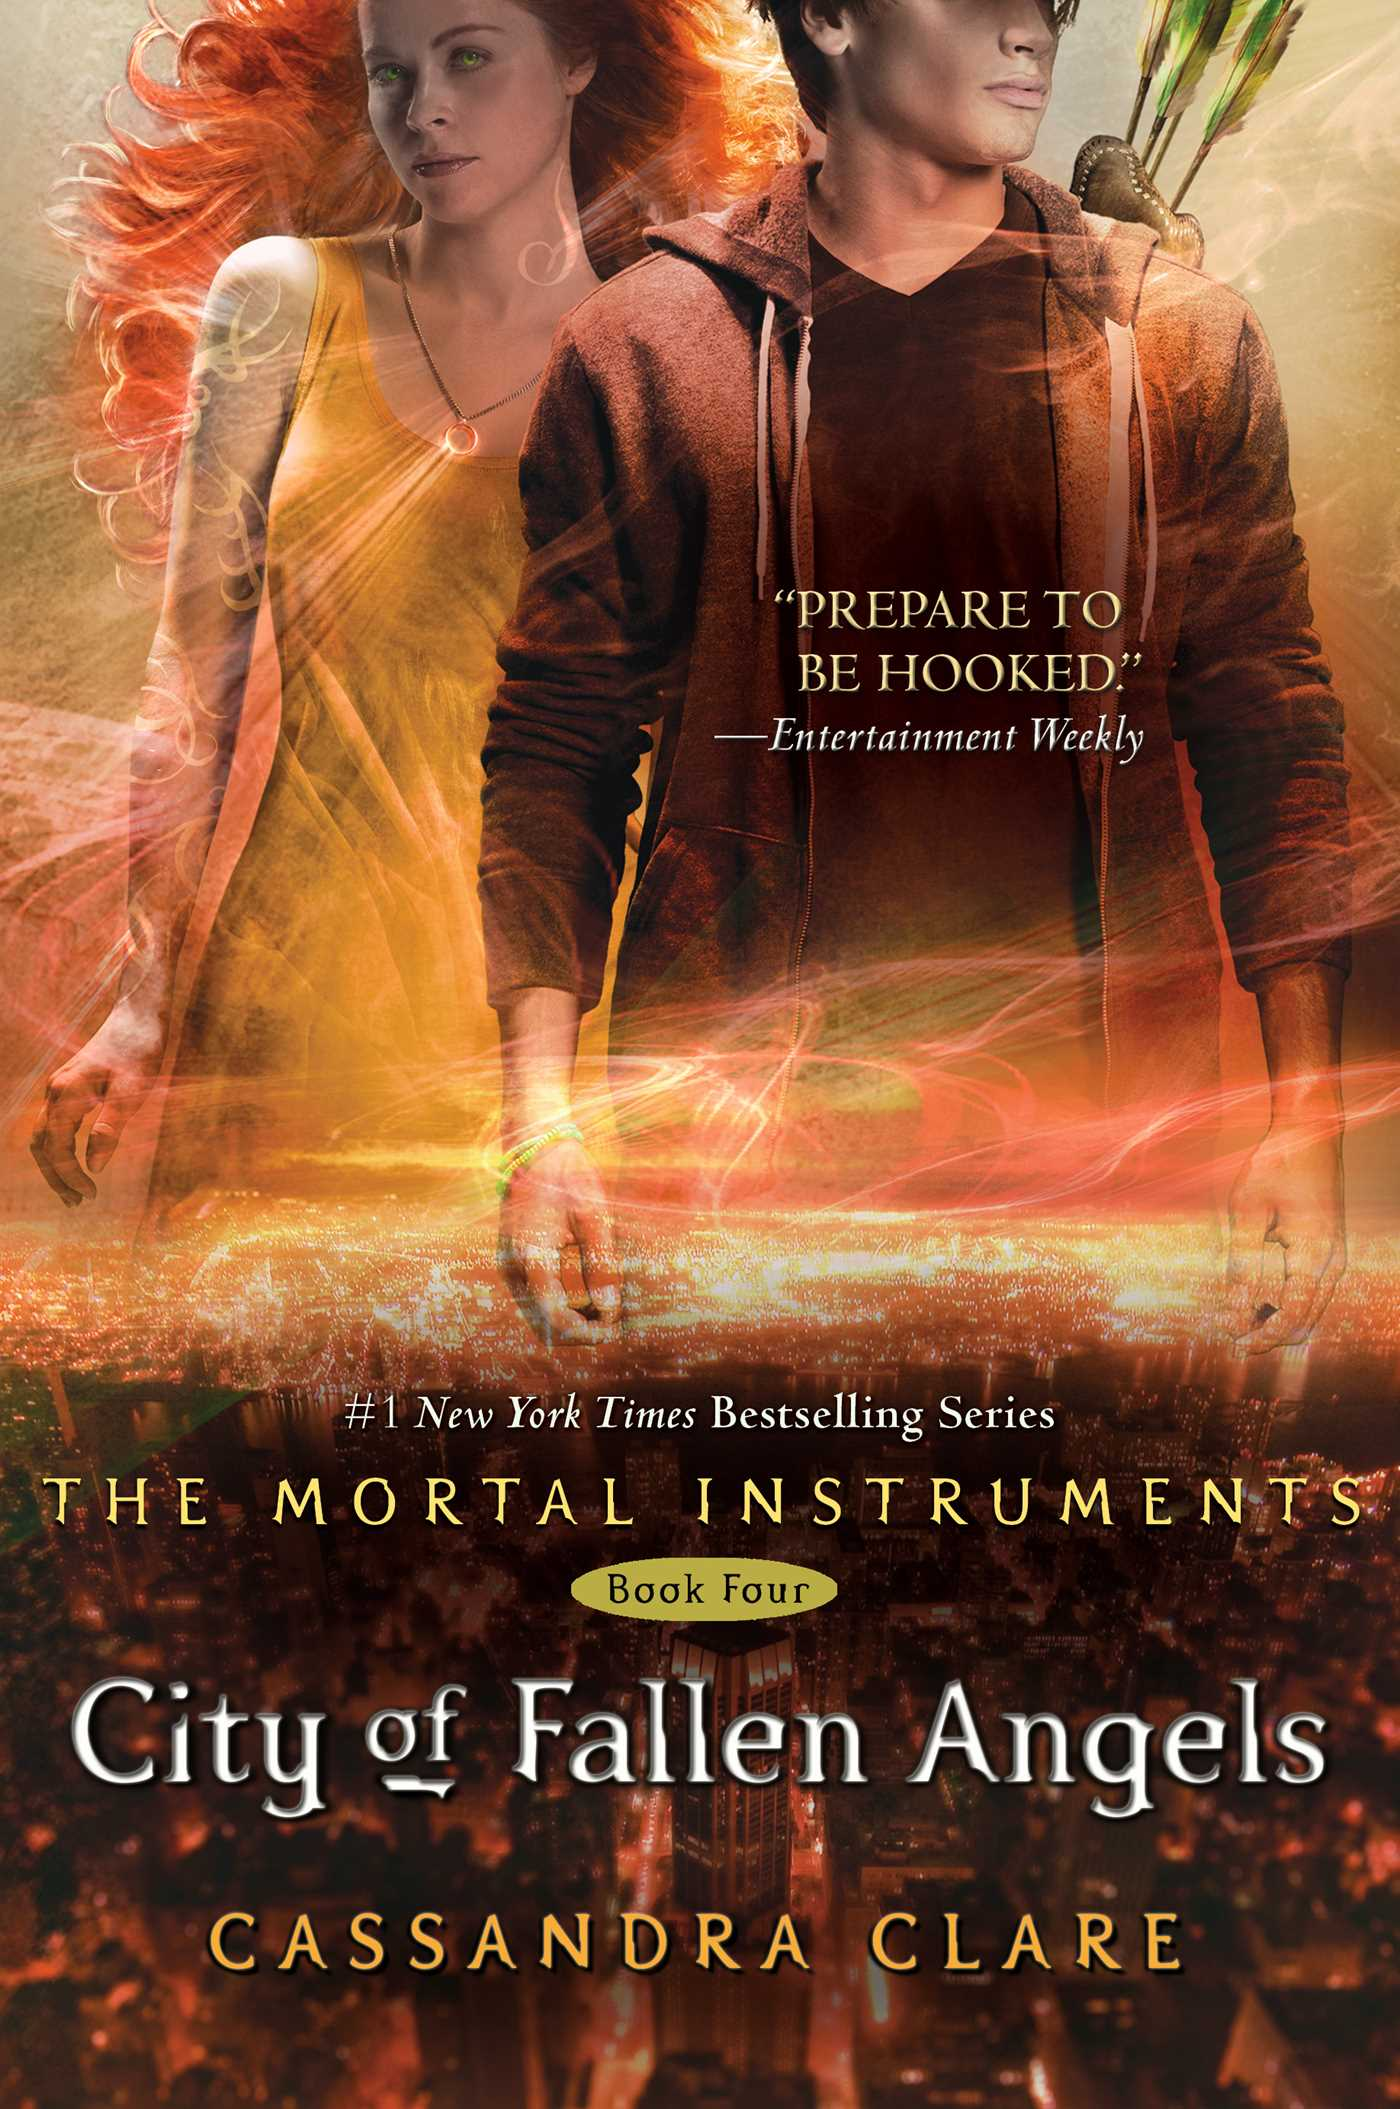 Image result for city of fallen angels book cover